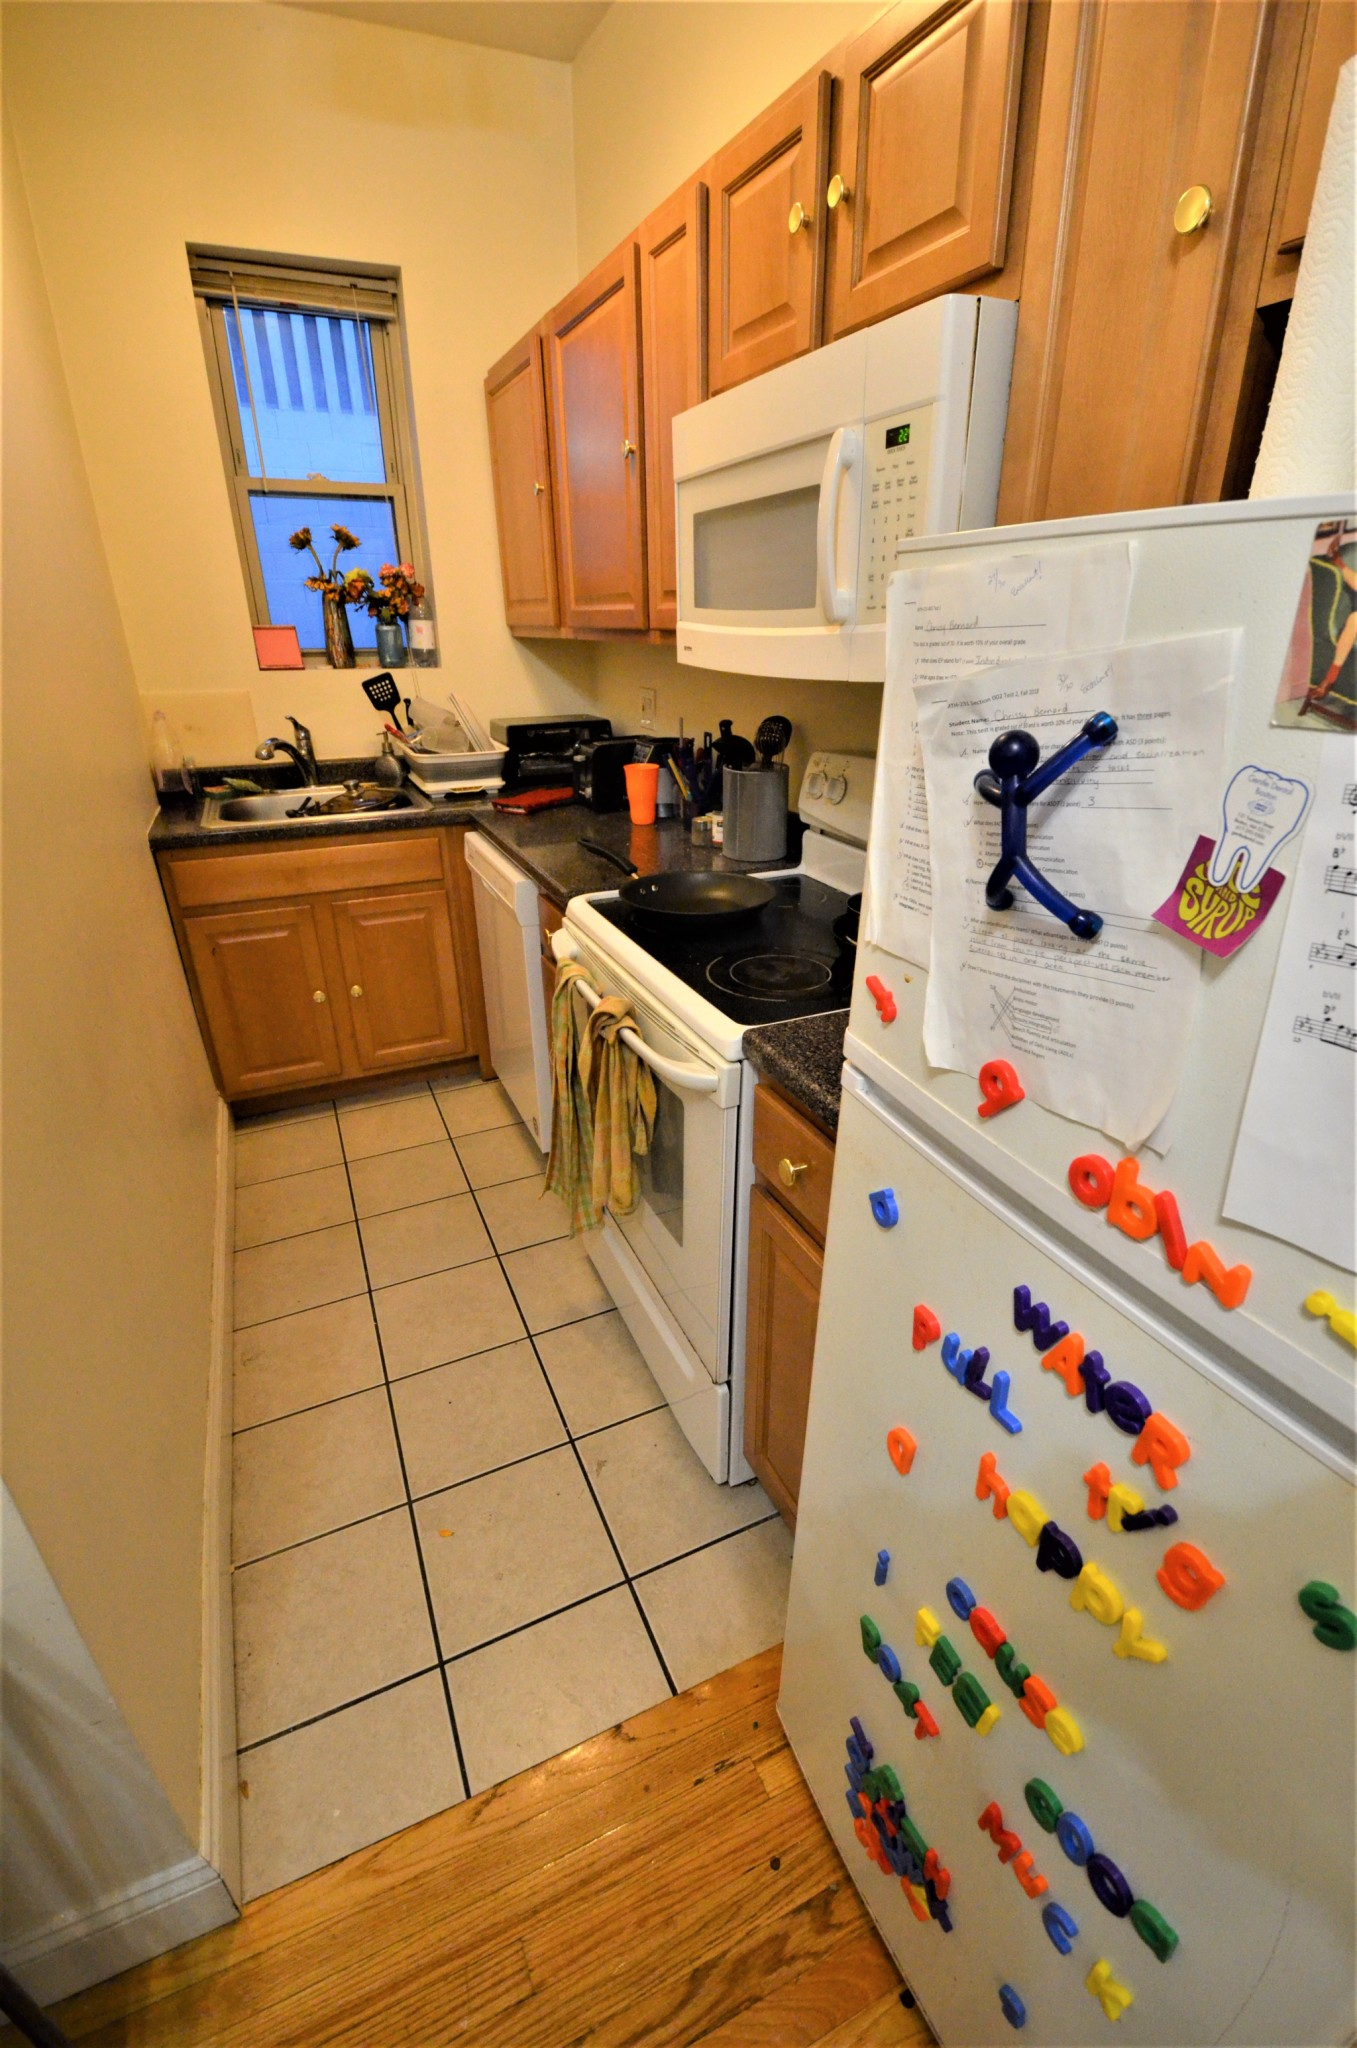 avail 9/1 - Spacious, Renovated, Gorgeous 1 BR split on Haviland